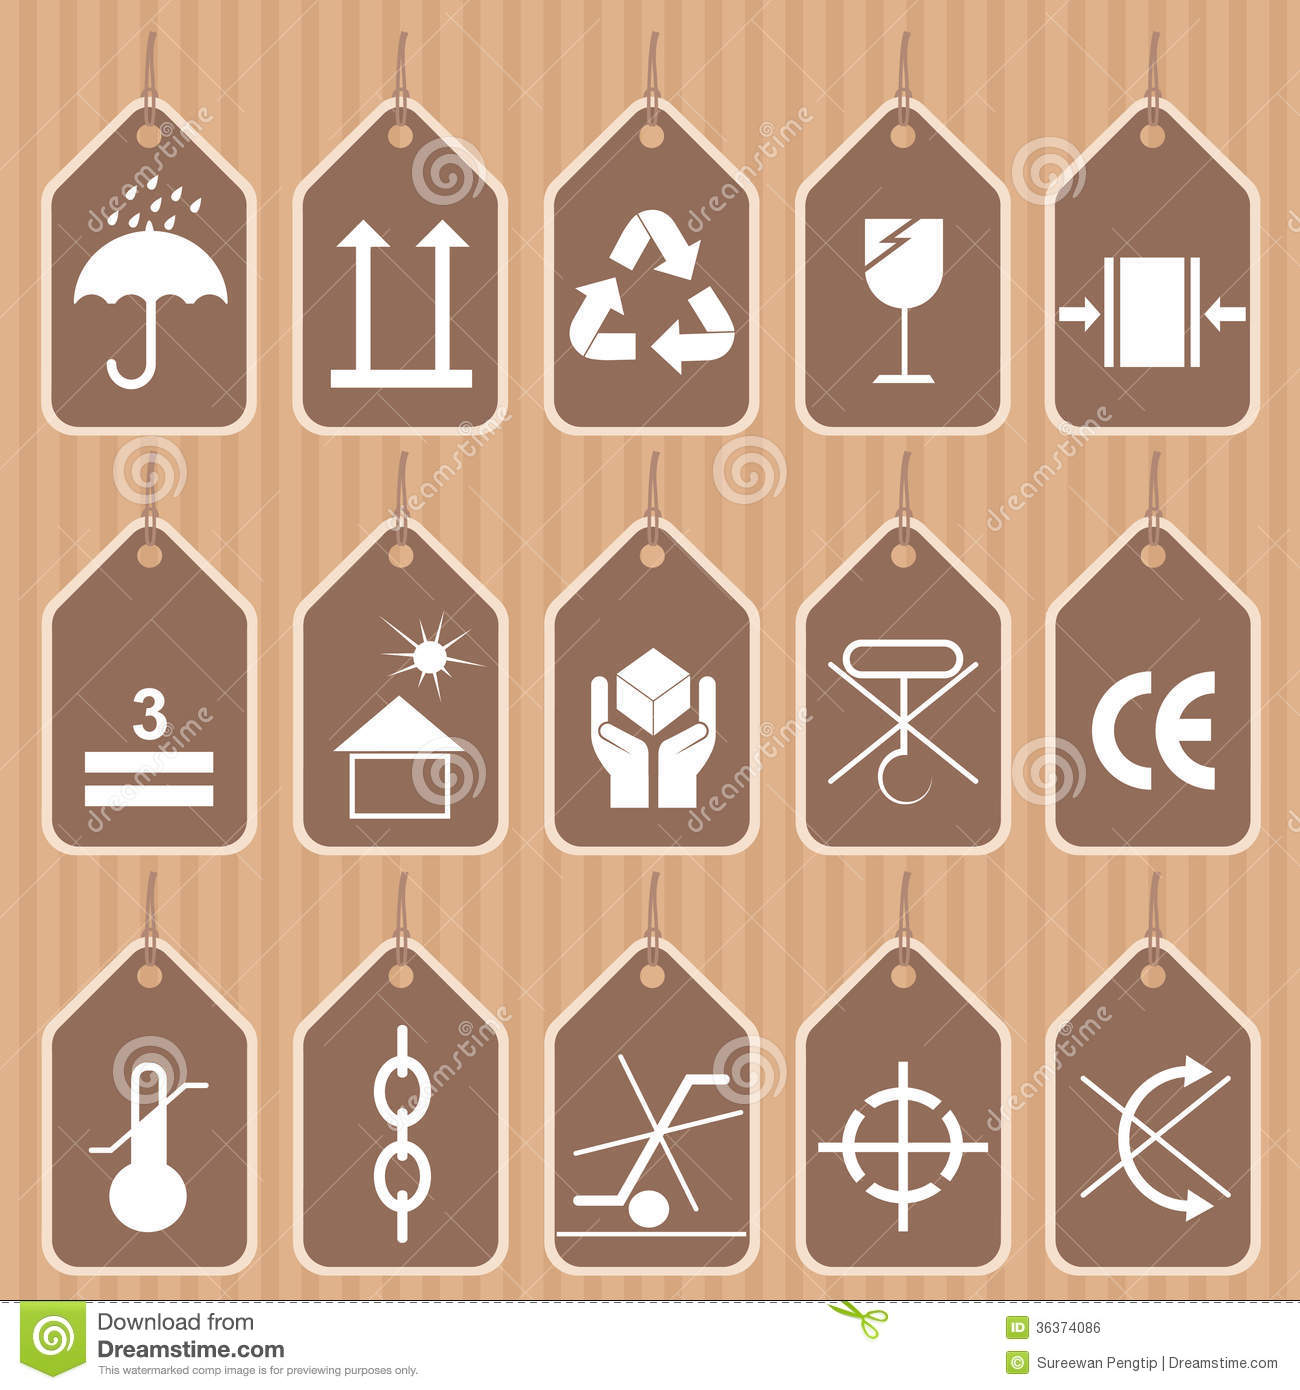 Packing and shipping symbols vector set stock vector royalty free stock photo biocorpaavc Images